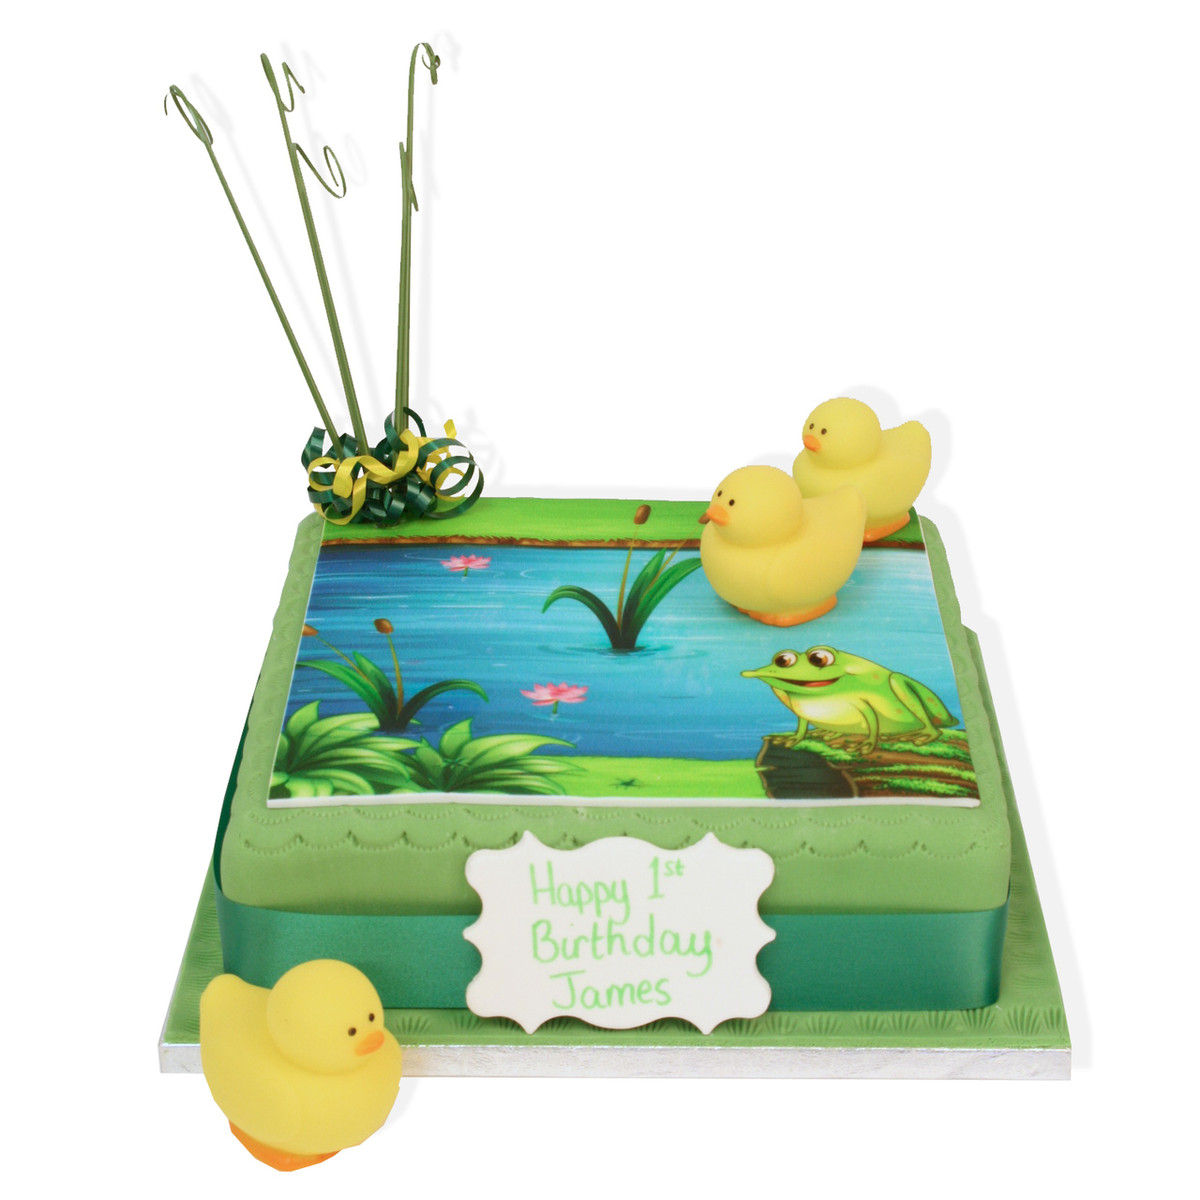 Brilliant Duck Pond Birthday Cake Childrens Birthday Cakes The Brilliant Funny Birthday Cards Online Alyptdamsfinfo